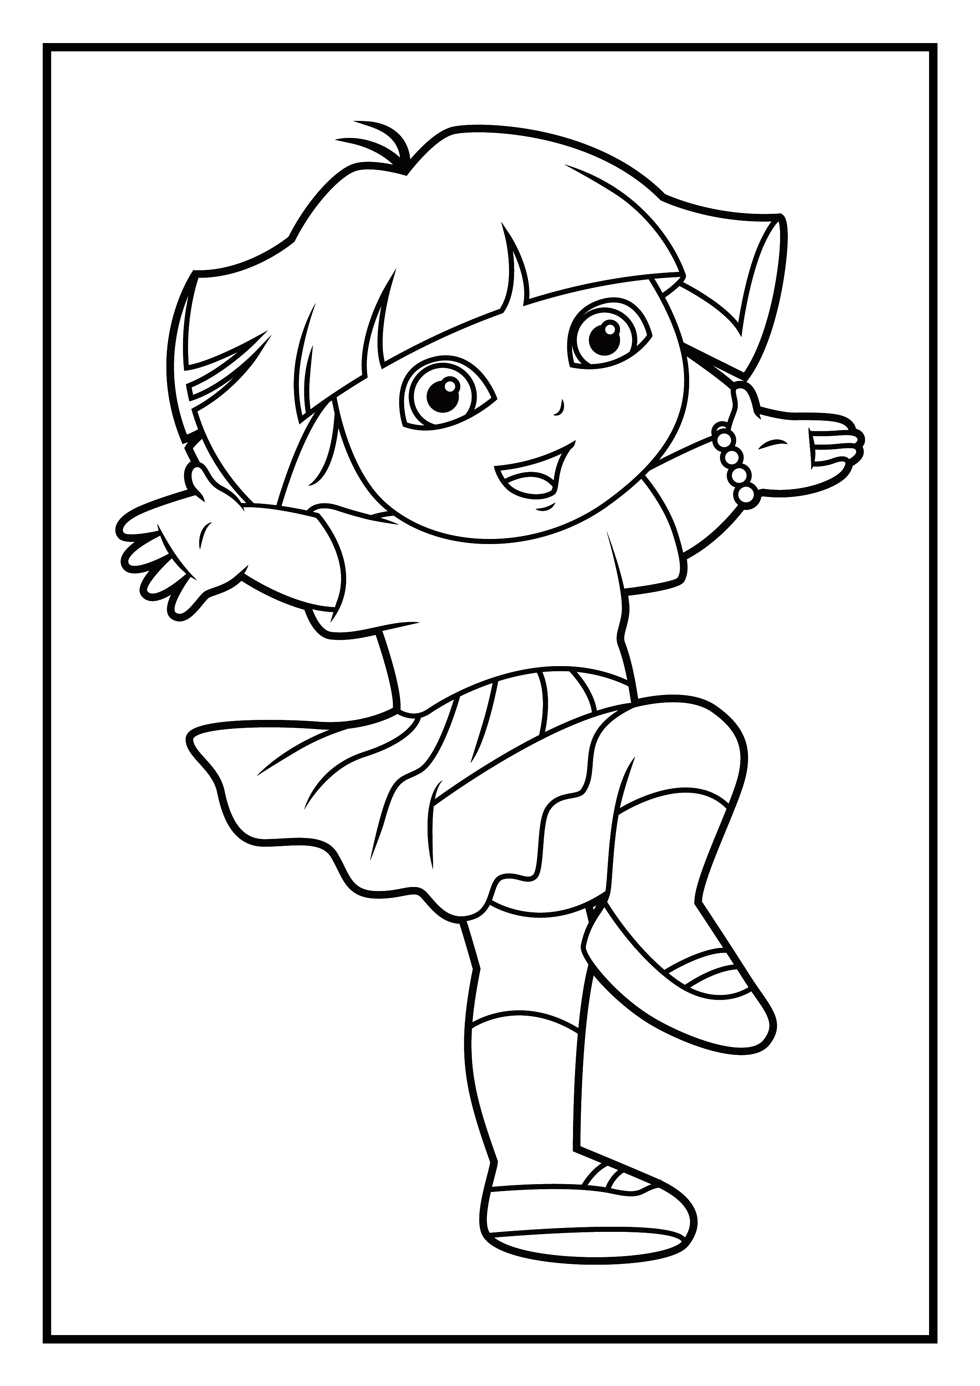 Snapchat Coloring Pages Coloring Pages